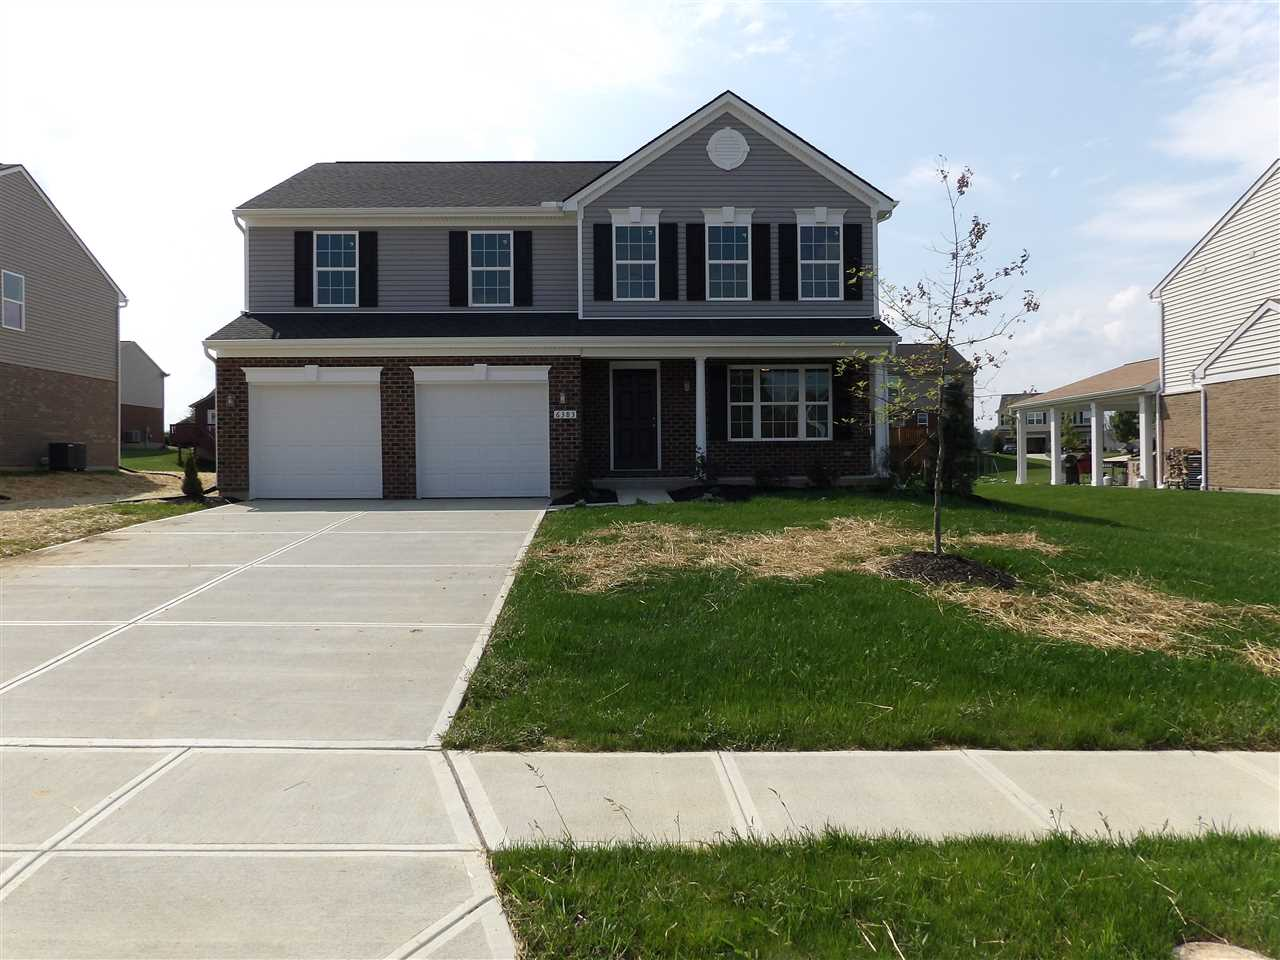 Photo 1 for 6383 Browning Trl Burlington, KY 41005